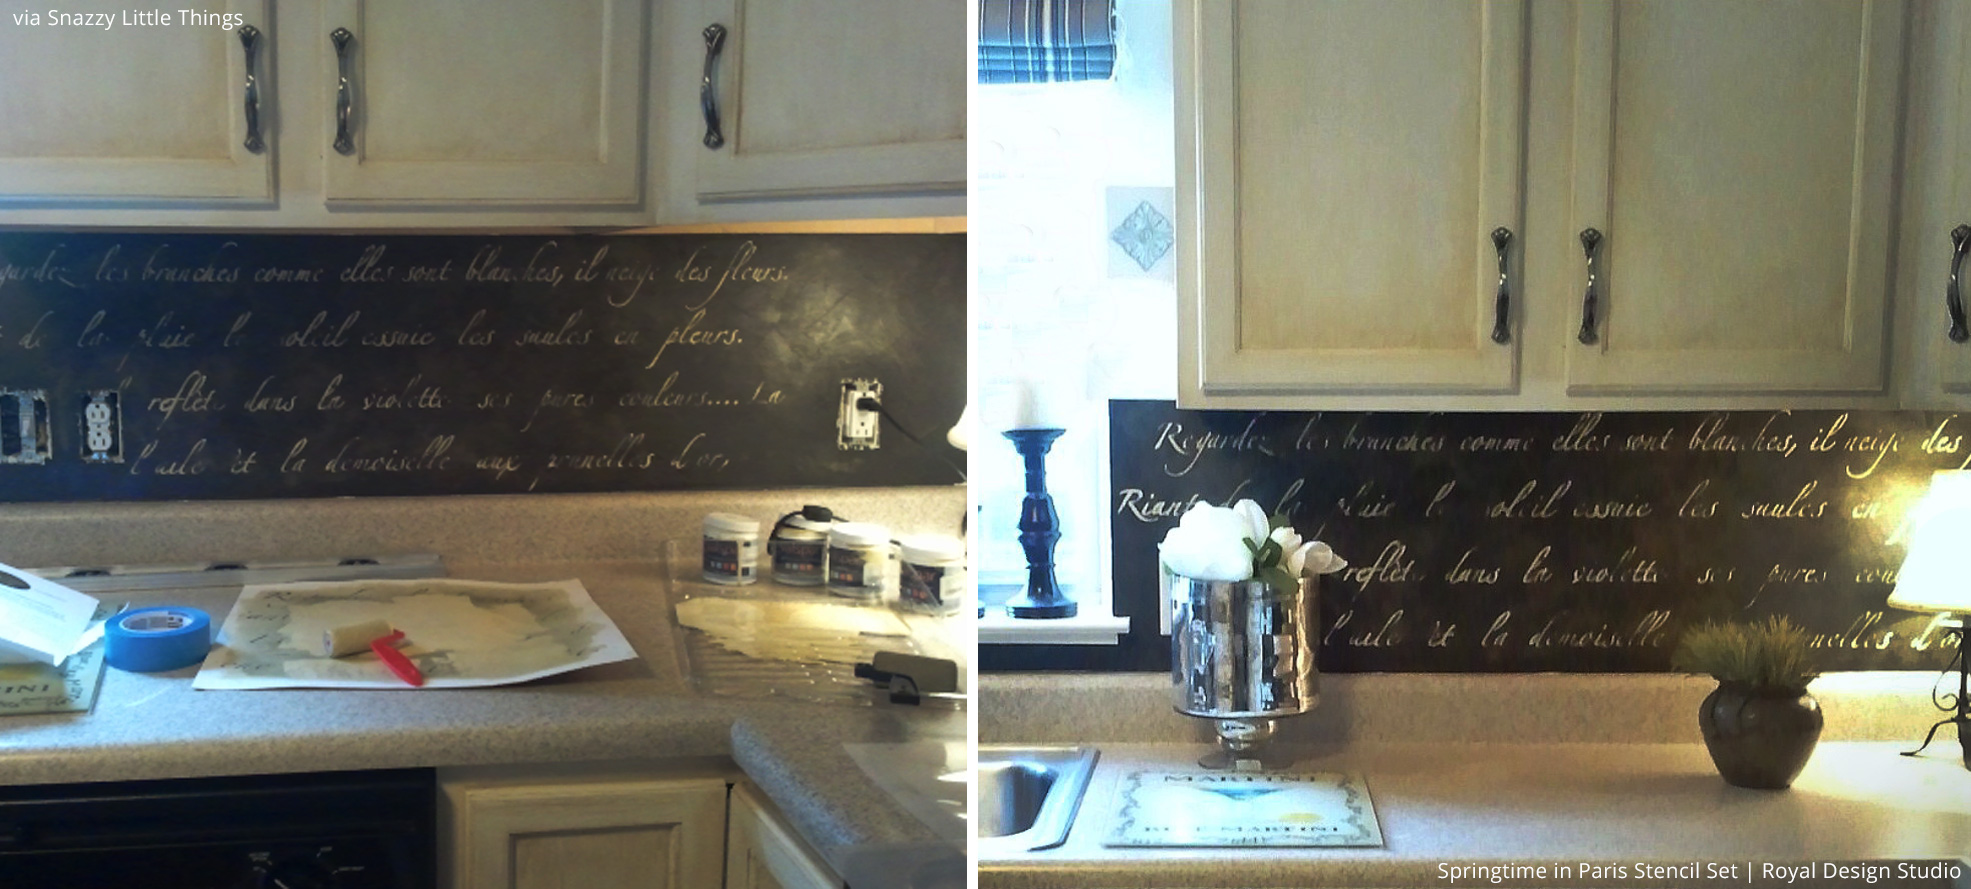 6 trendy wall decorating ideas with lettering stencils paint paint your kitchen backsplash with lettering stencils royal design studio wall stencils amipublicfo Image collections